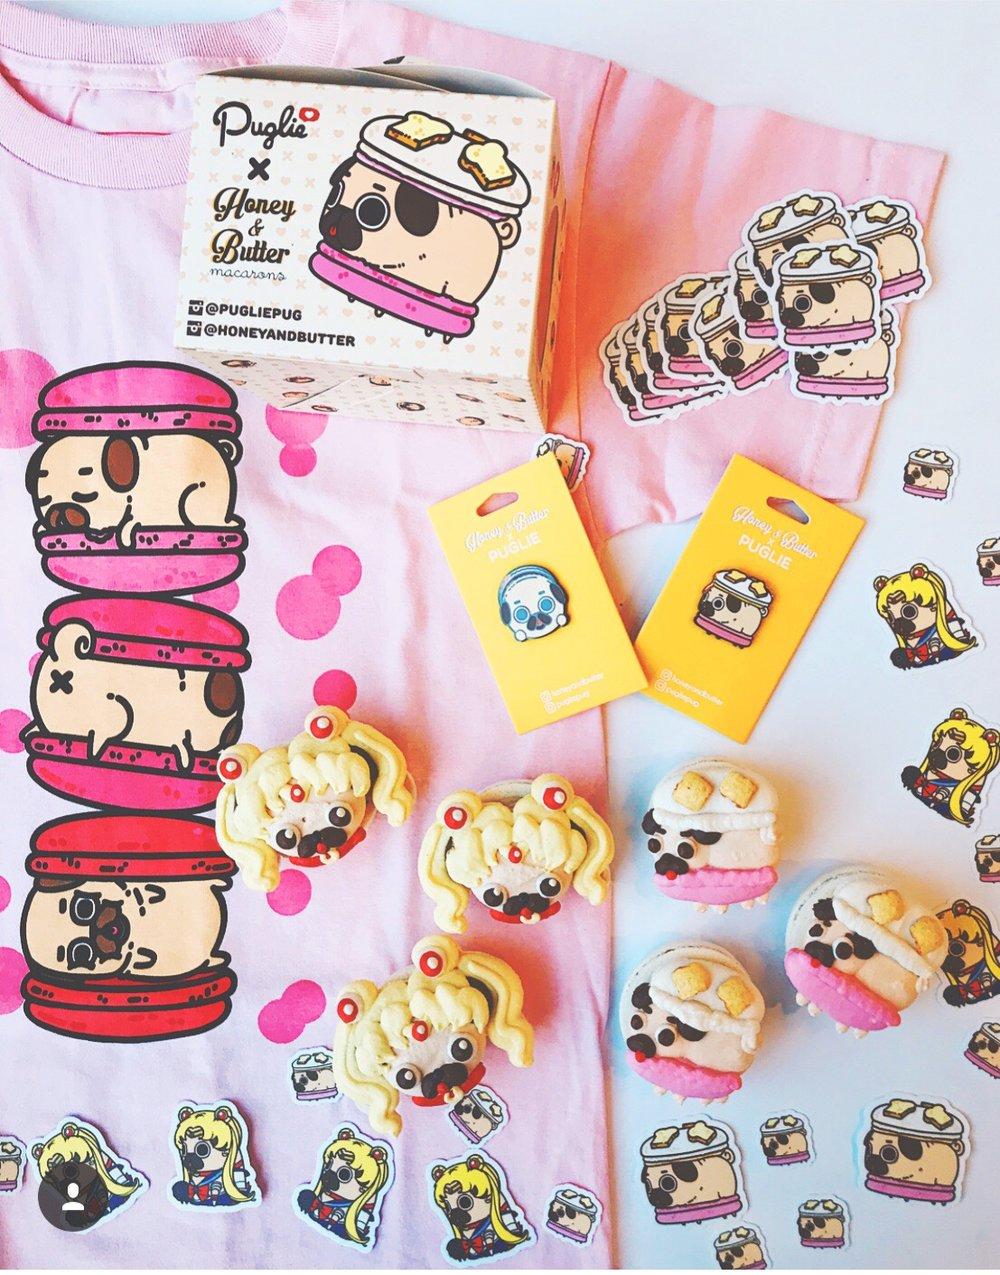 Puglie x Honey & Butter T-shirt and Pin Production Management